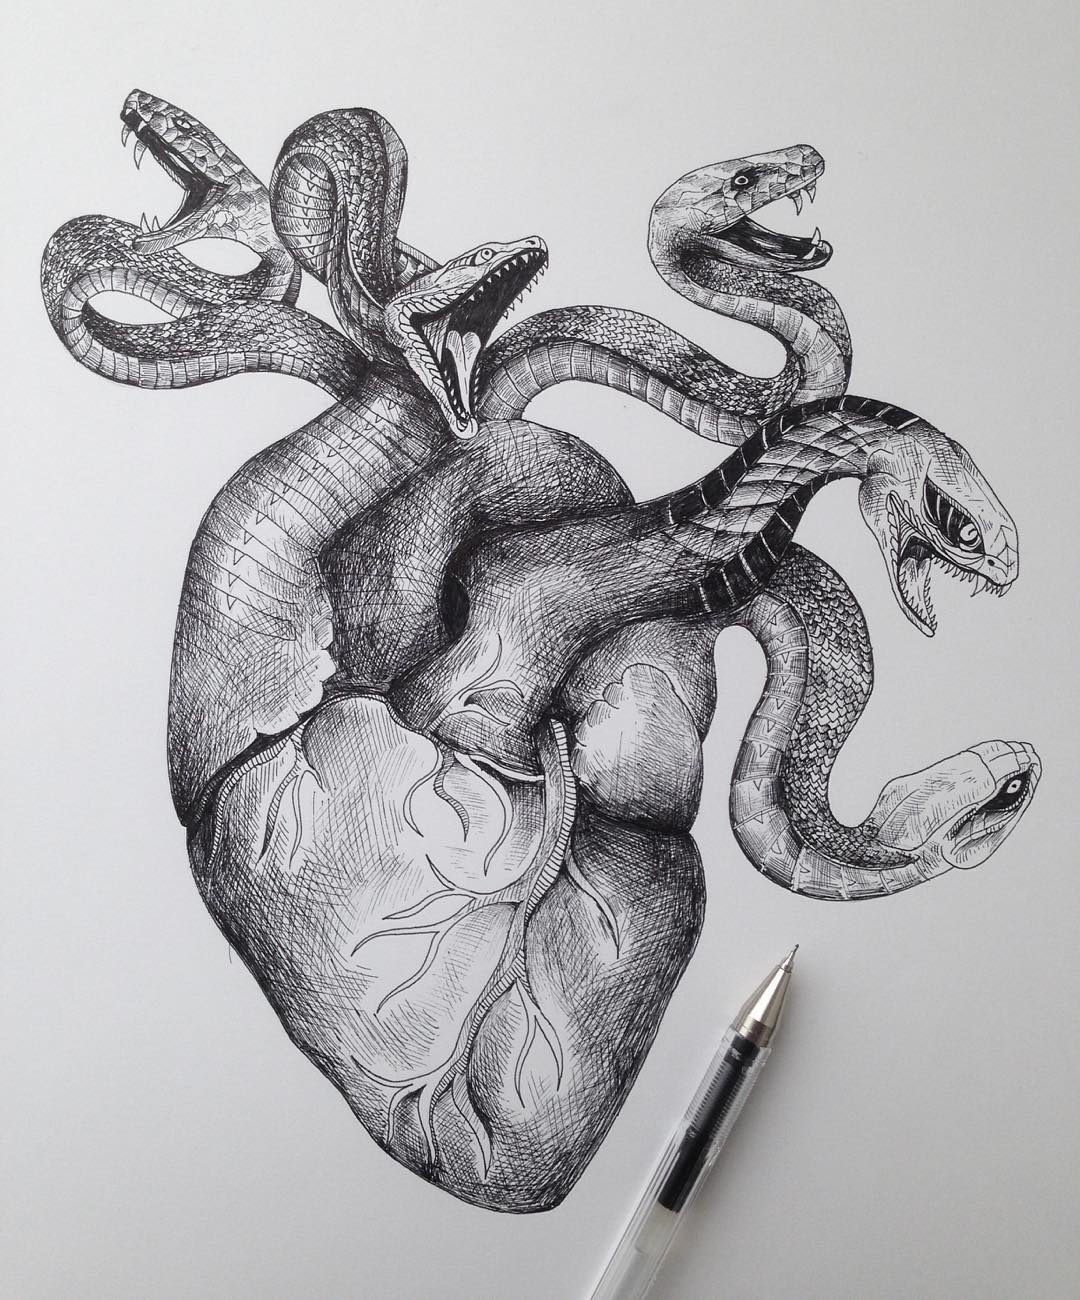 13-Snakes-and-Heart-Alfred-Basha-The-World-of-the-Mind-Expressed-in-Drawings-www-designstack-co